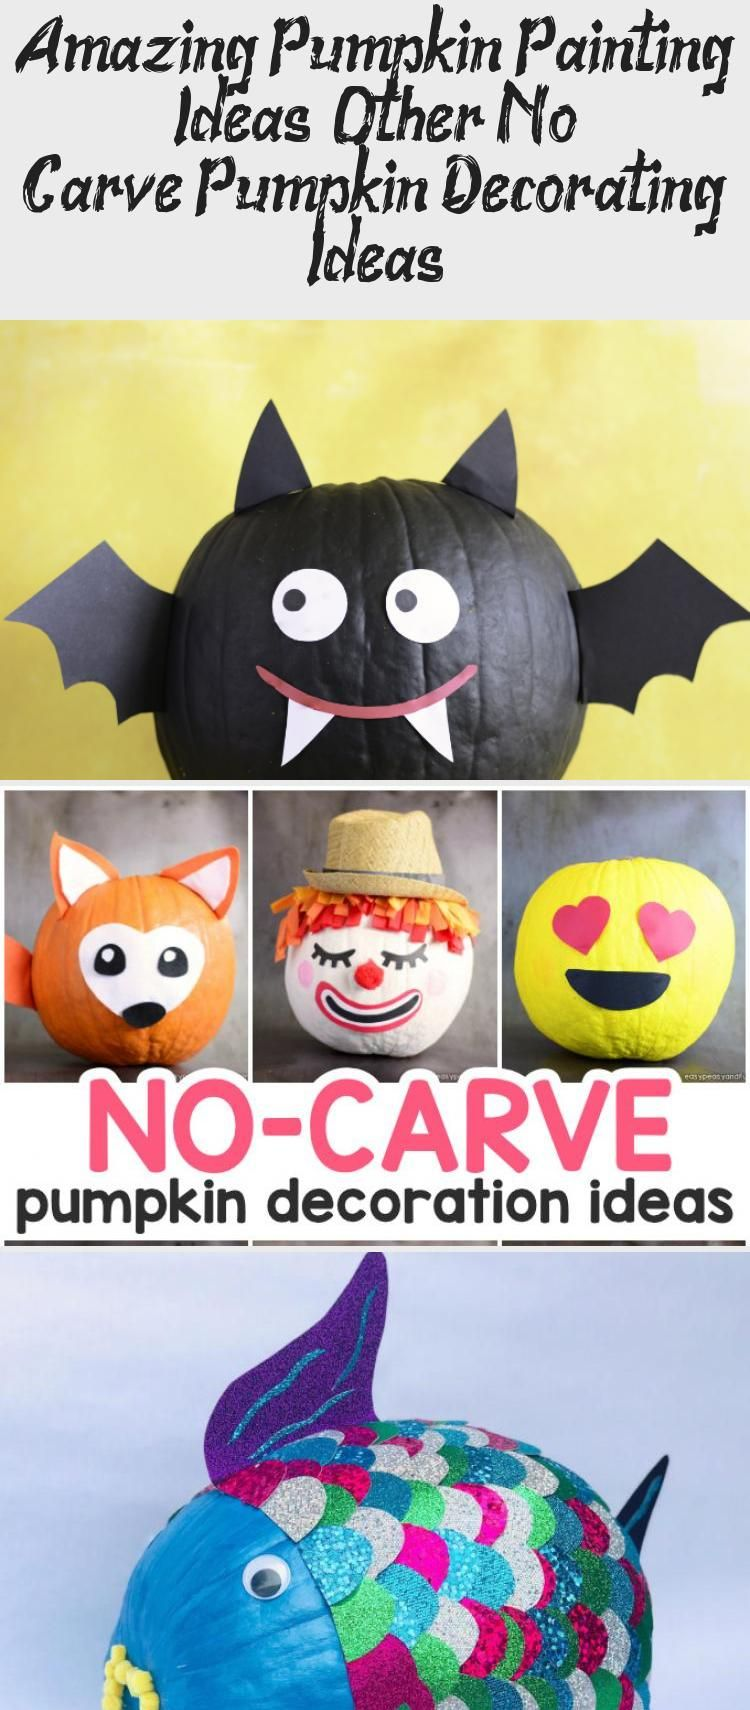 Amazing Pumpkin Painting Ideas & Other No Carve Pumpkin Decorating Ideas #paintingideasWatercolor #paintingideasFace #paintingideasSpace #paintingideasCactus #Trippypaintingideas #pumpkinpaintingideas